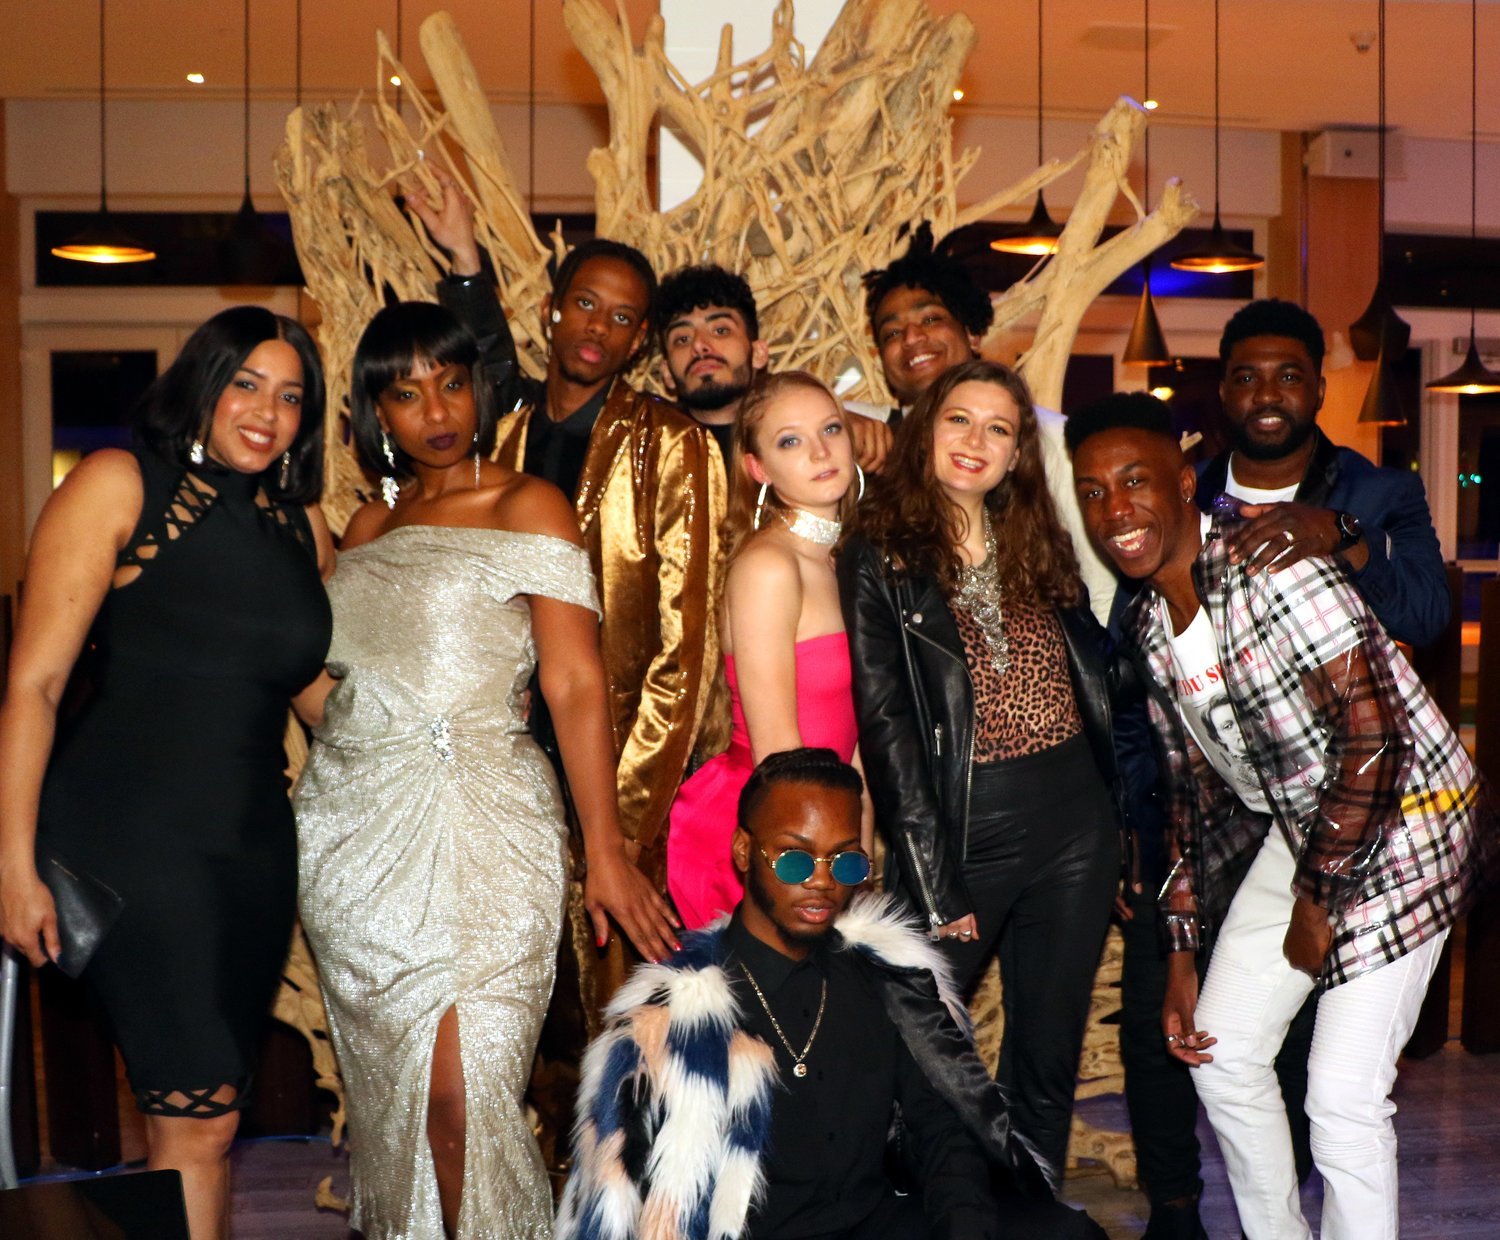 Local fashion stylist Chris Banks, in white at right, coordinated a fashion show with a group of models at the third annual Women in the Arts Awards and Recognition Party and Fundraiser at the Allegria Hotel on March 22.